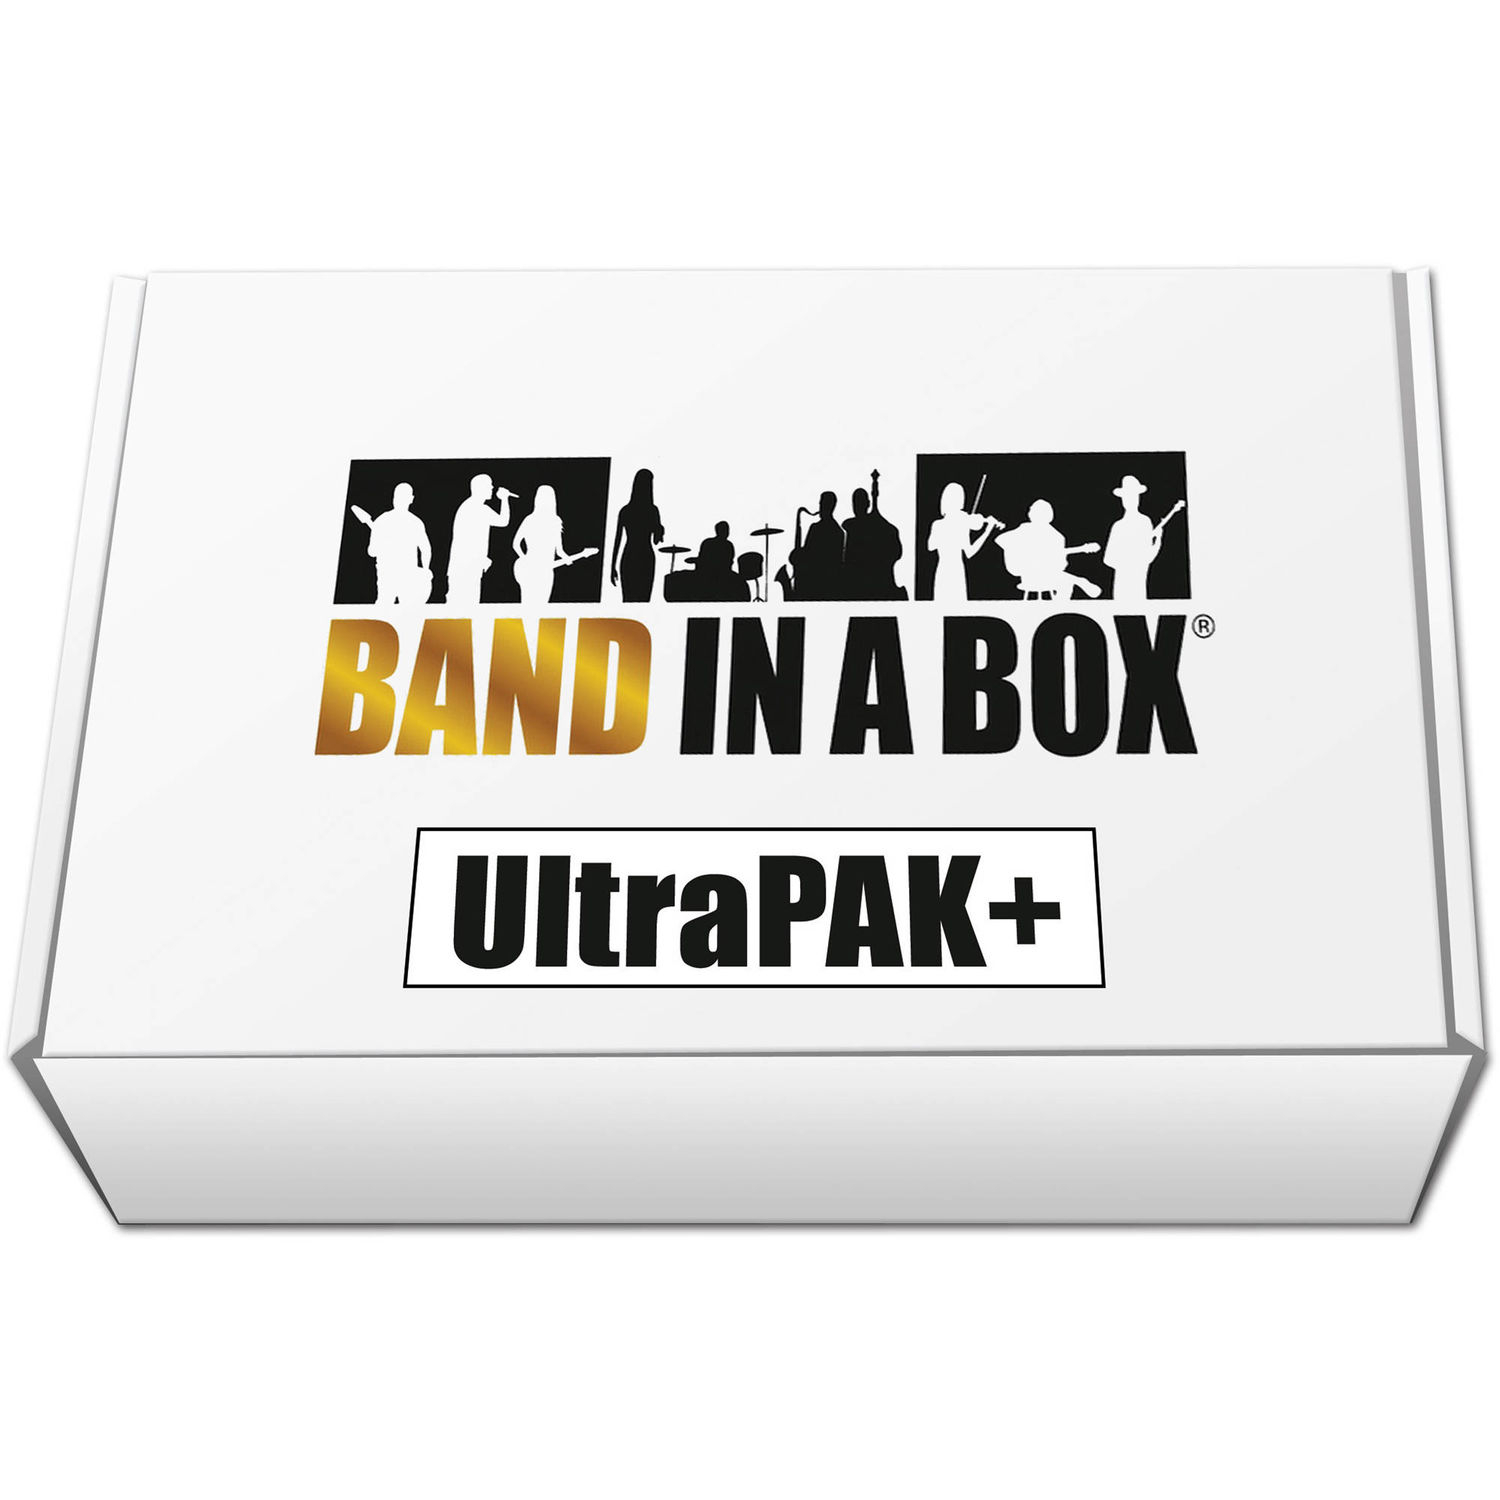 PG Music Band-in-a-Box 2018 Pro - Backing Band / BBE80705DL B&H